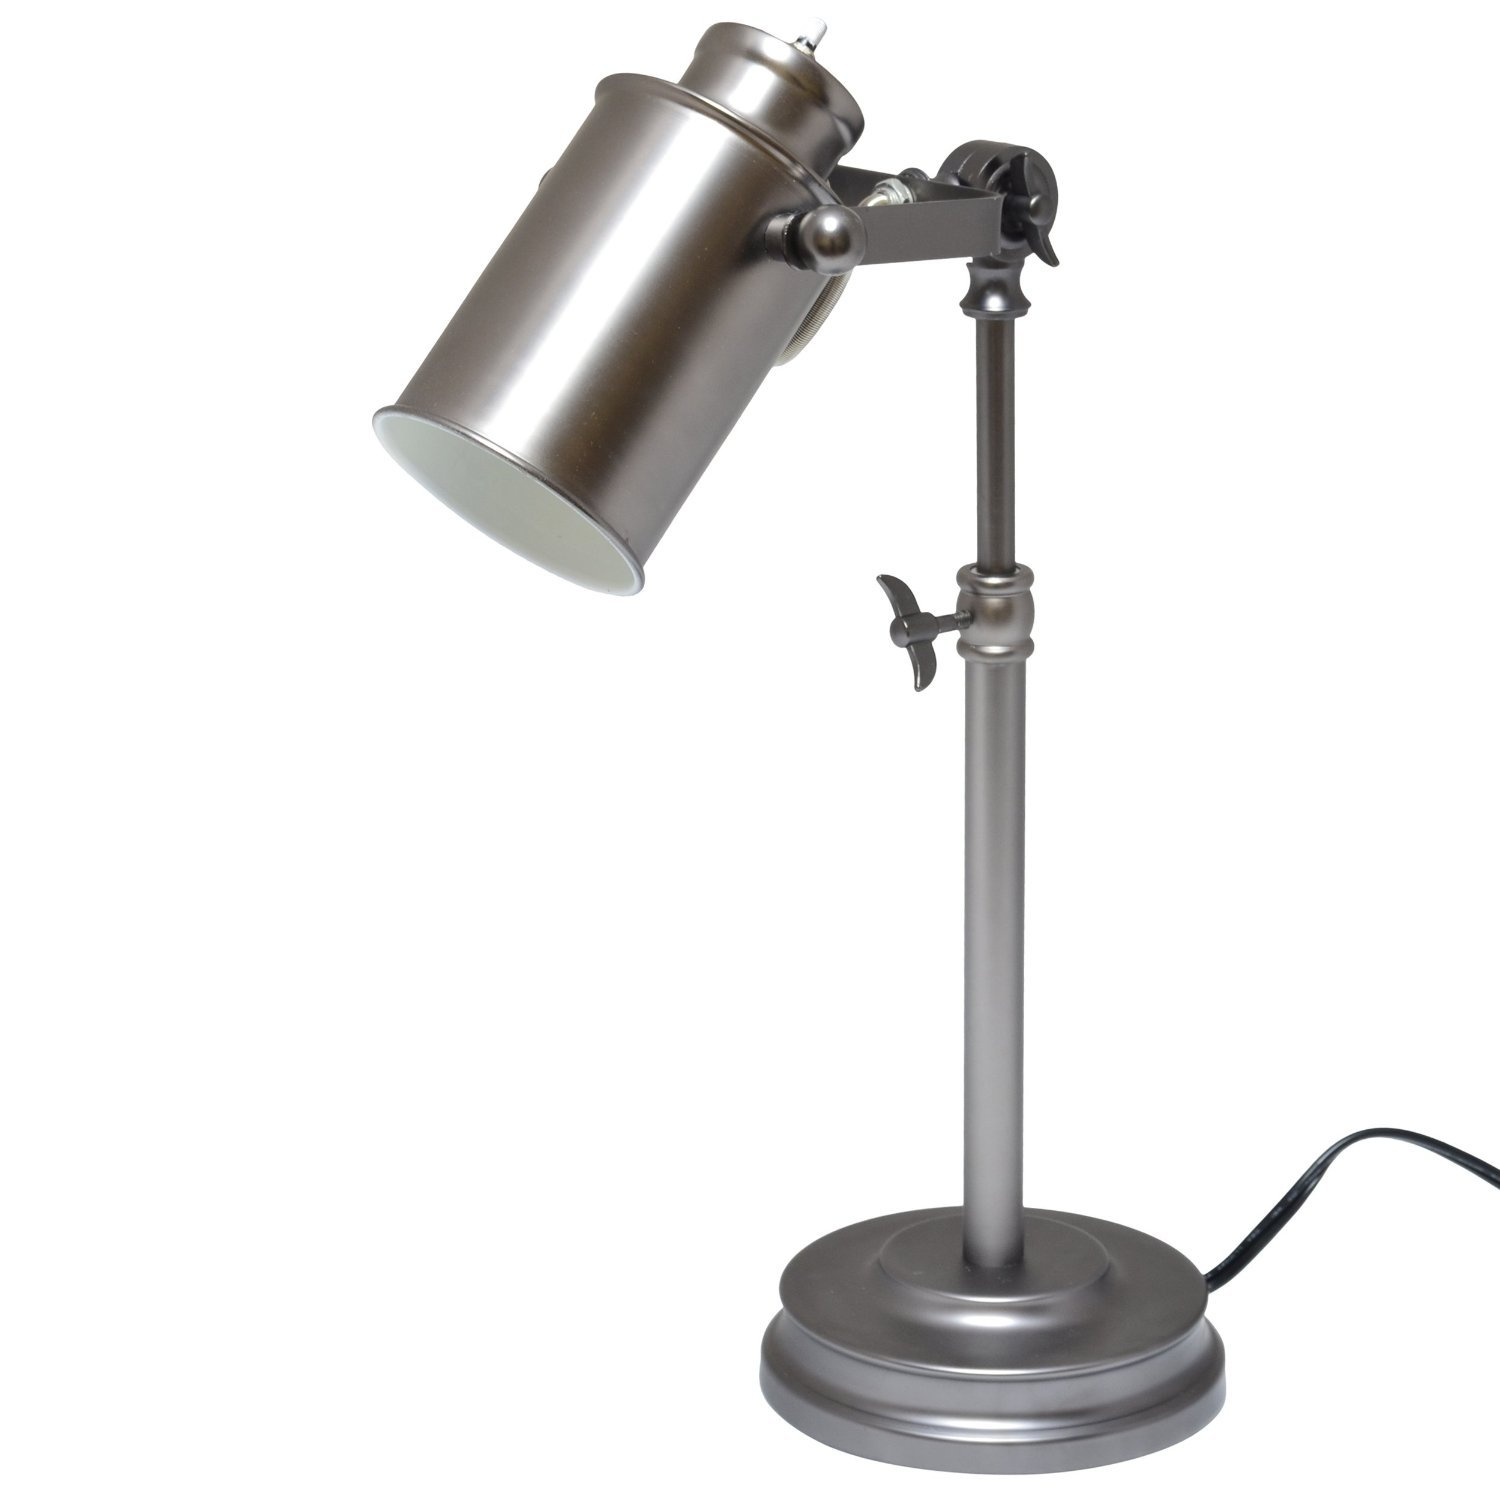 Light Accents Desk Lamp Antique Style Metal Desk Light (Aged Pewter) - -  Amazon.com - Light Accents Desk Lamp Antique Style Metal Desk Light (Aged